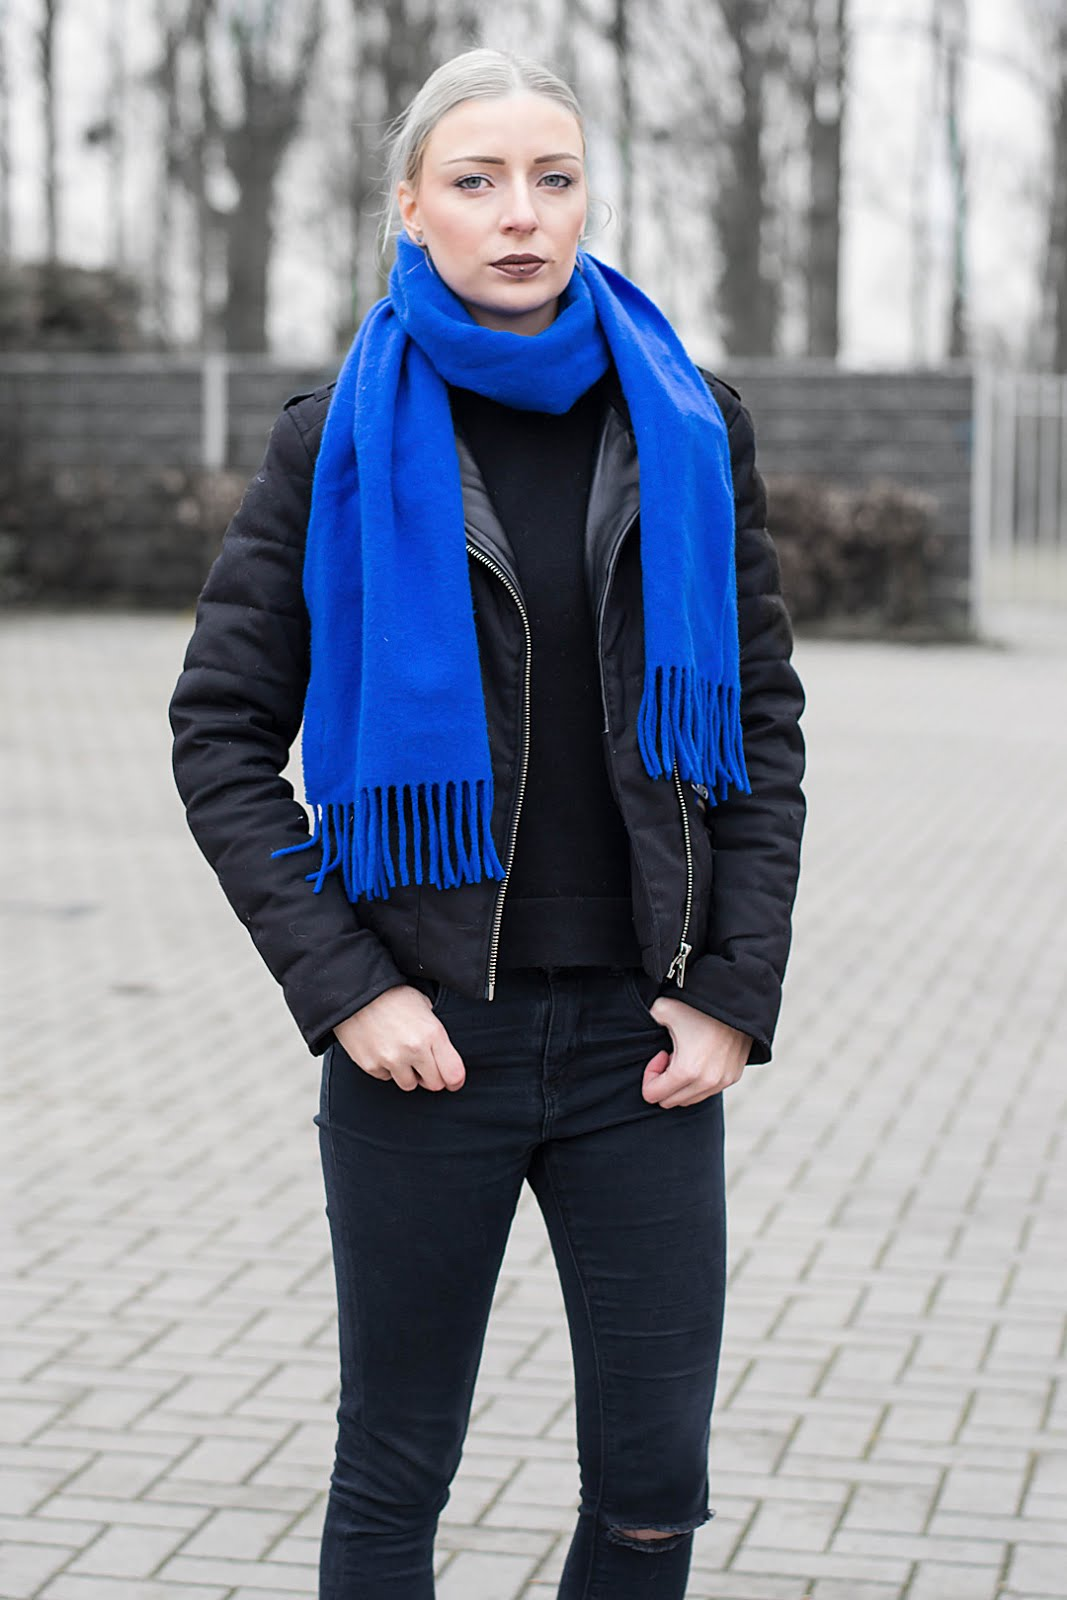 Black outfit, cobalt blue accessoiries and the kooples jacket